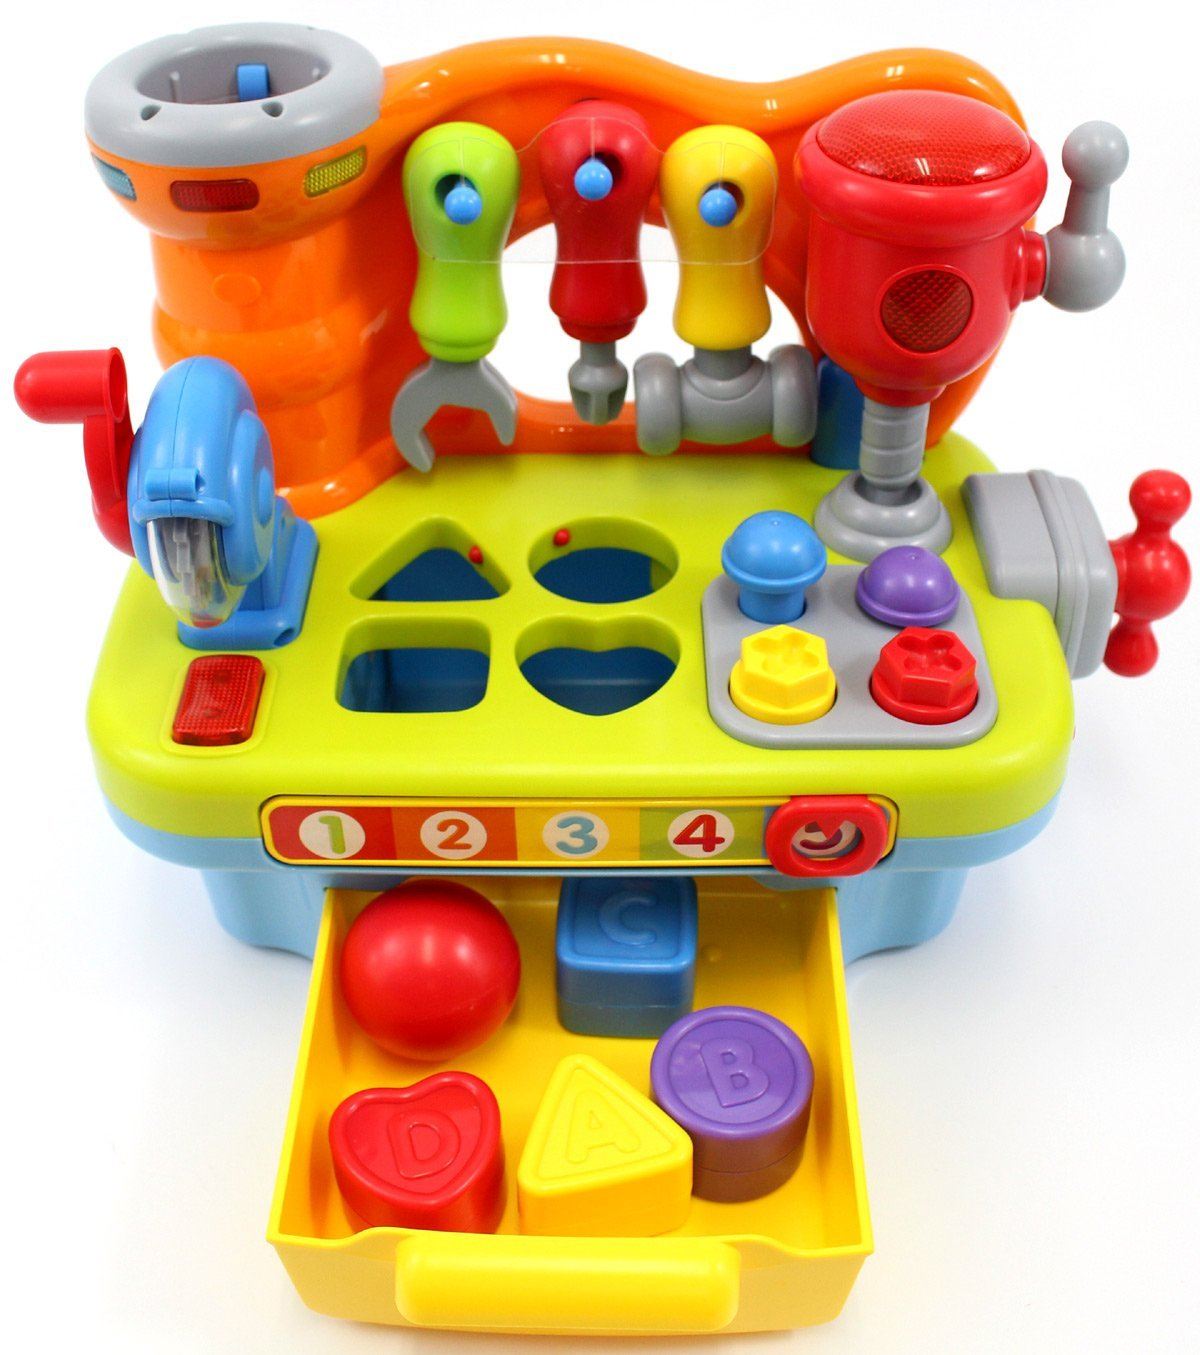 Ciftoys Musical Learning Workbench Toy For Children